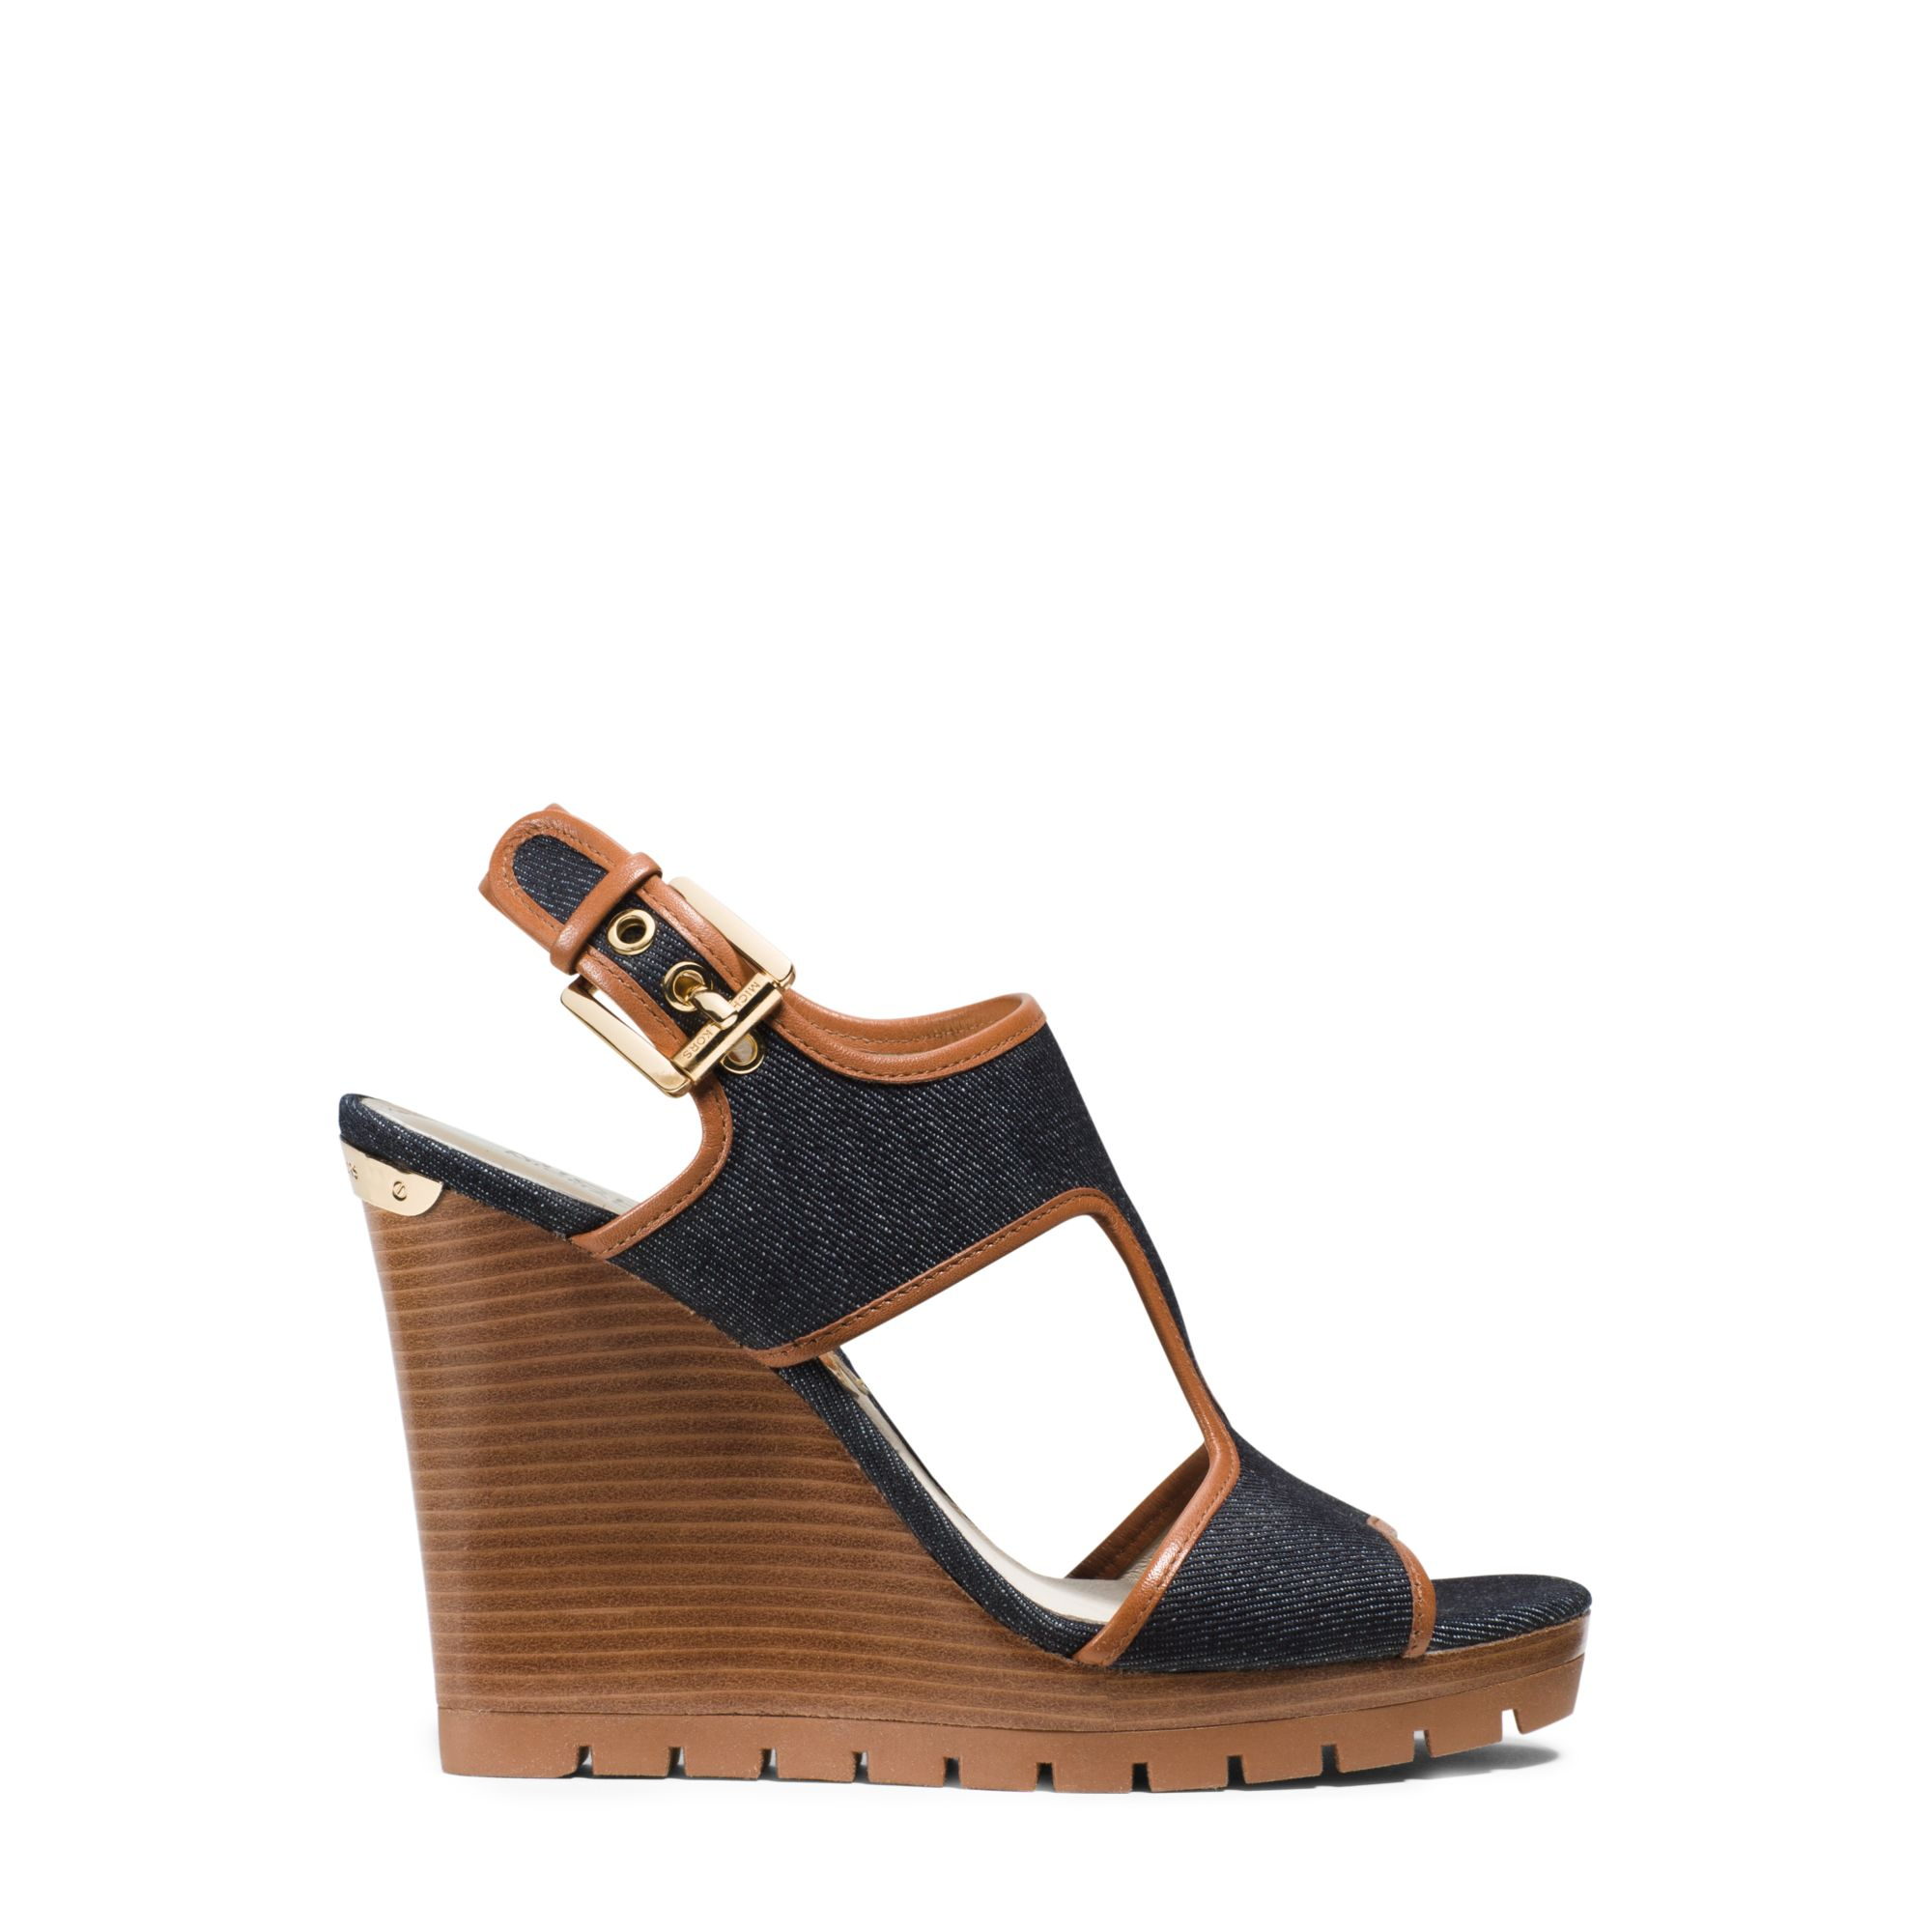 a97c0694a484 Lyst - Michael Kors Gillian Leather-trimmed Denim Wedge in Blue